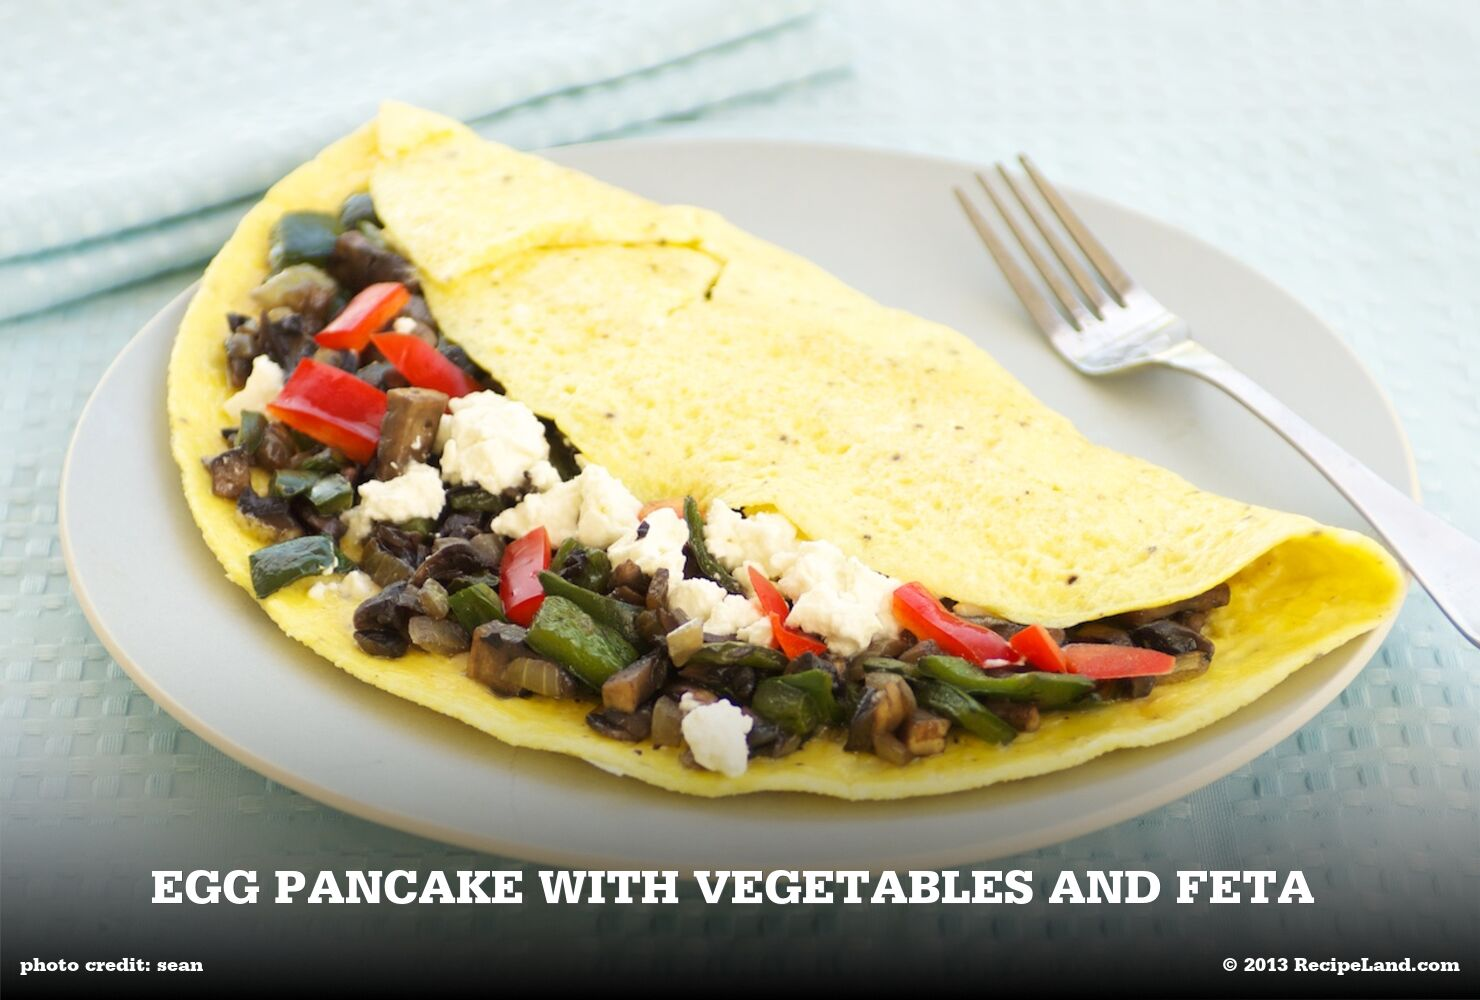 Egg Pancake with Vegetables and Feta